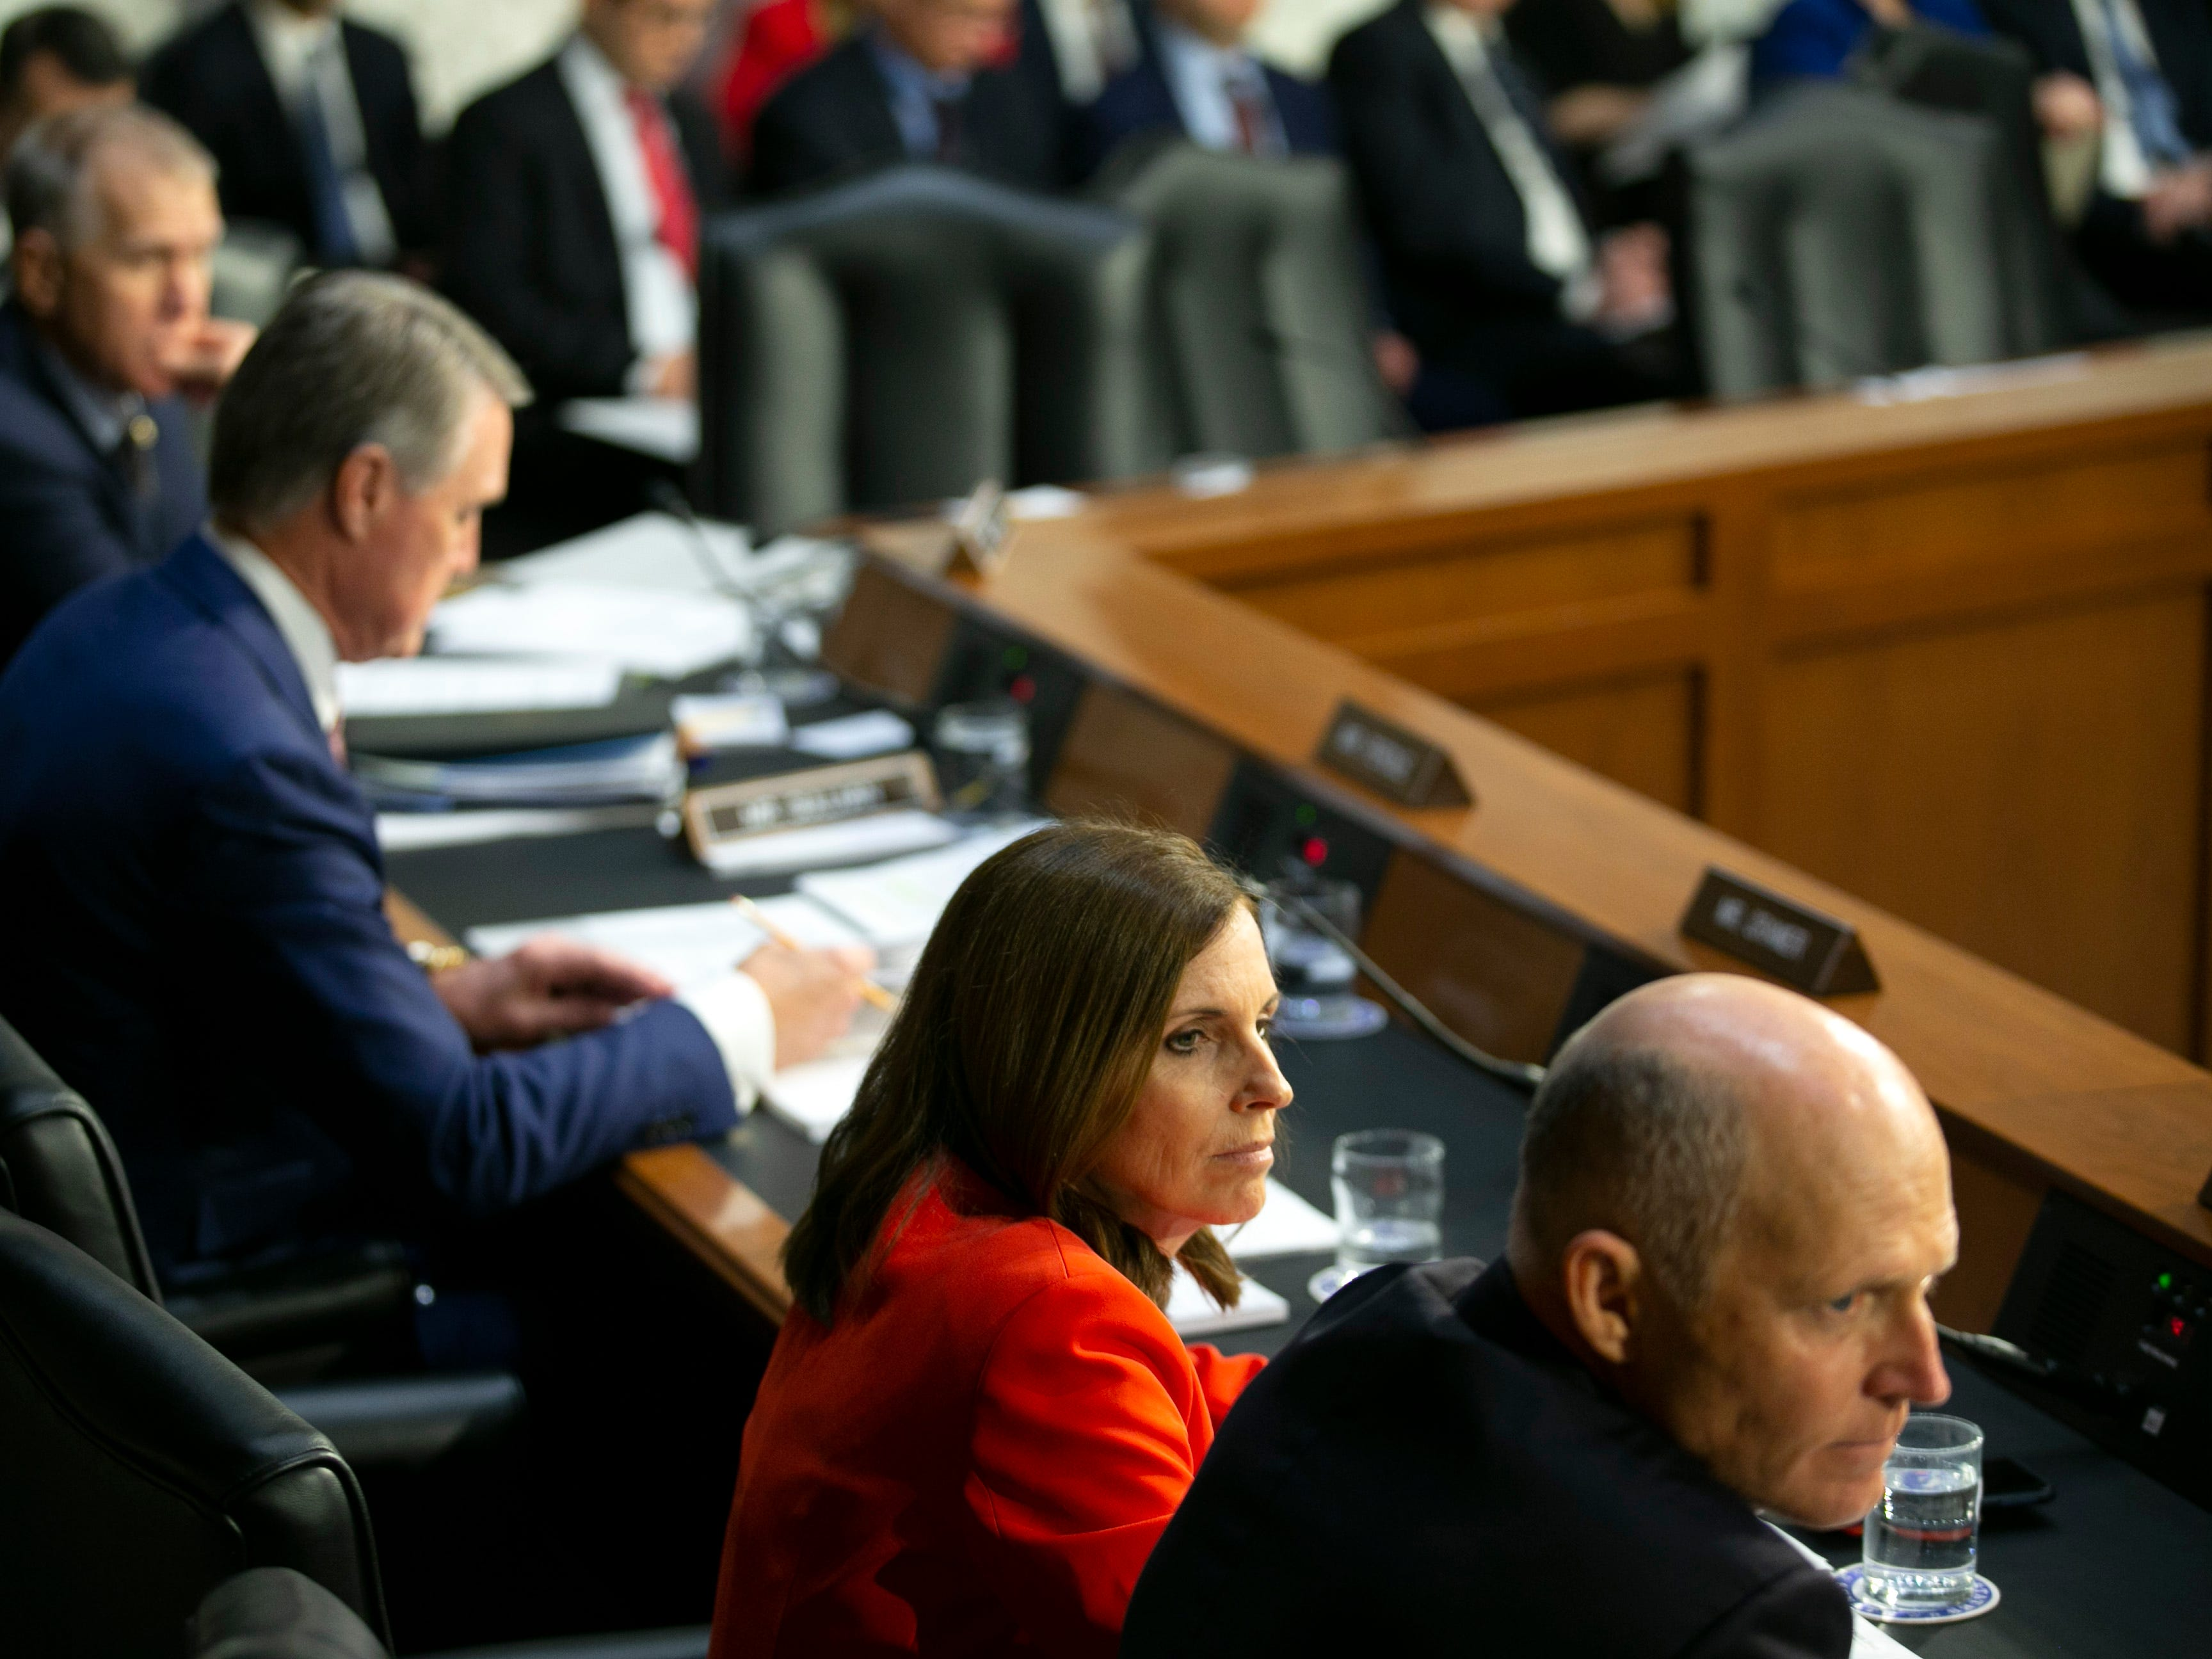 U.S. Sen. Martha McSally listens alongside Senator Rick Scott, R-Fla., during the U.S. Senate Committee on Armed Services  hearing at the U.S. Capitol in Washington D.C. on Feb. 5, 2019.